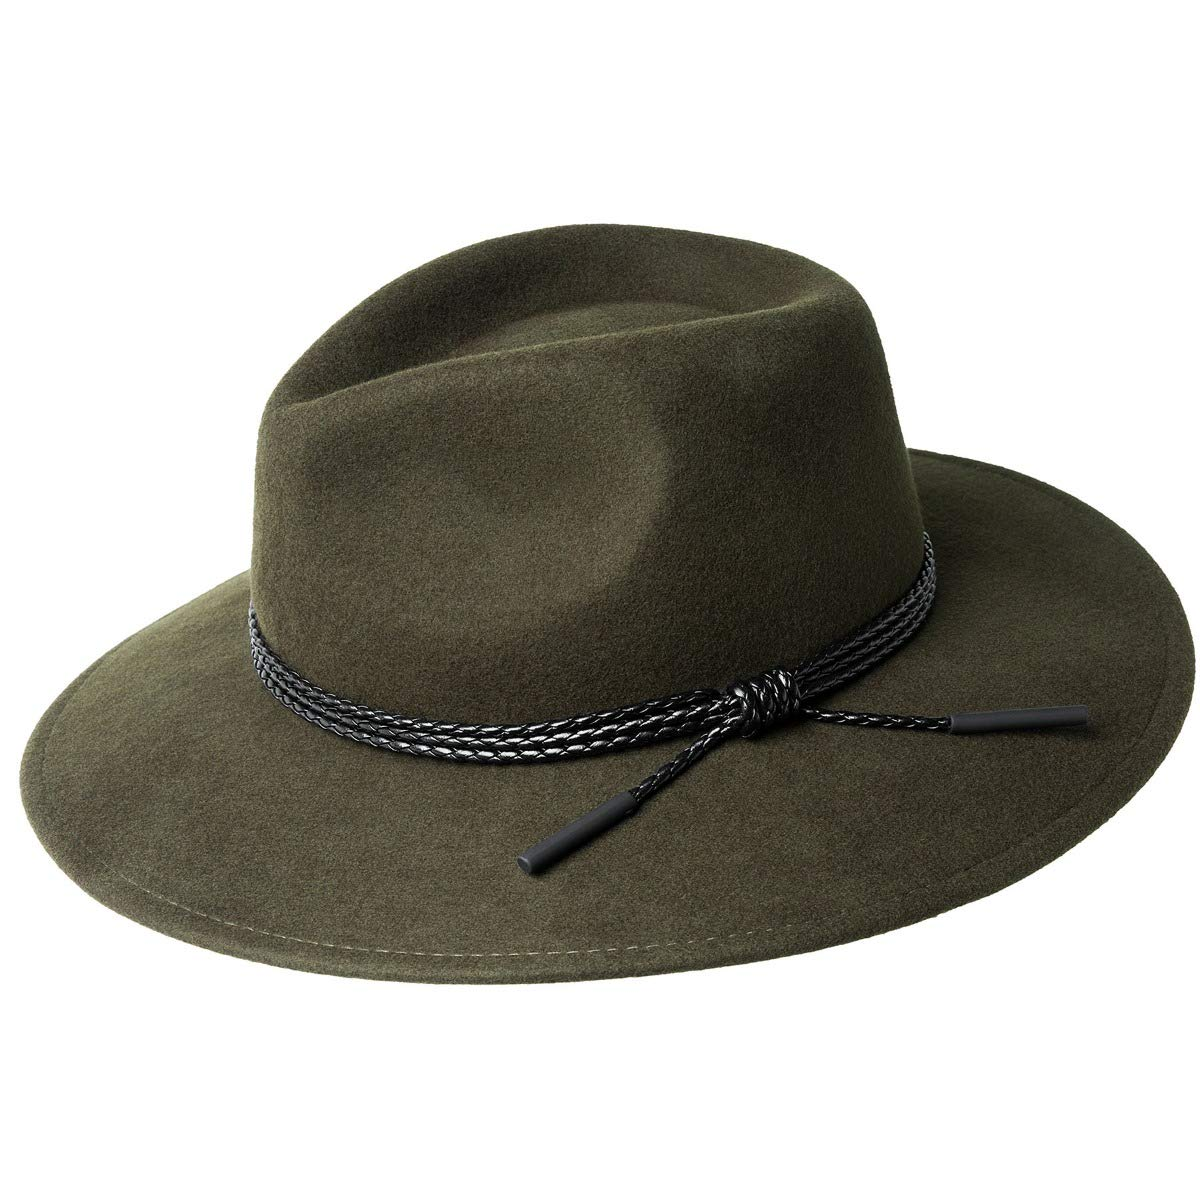 c814746ef19571 Bailey of Hollywood Men's Piston Wide Brim Fedora Trilby Hat at Amazon Men's  Clothing store: